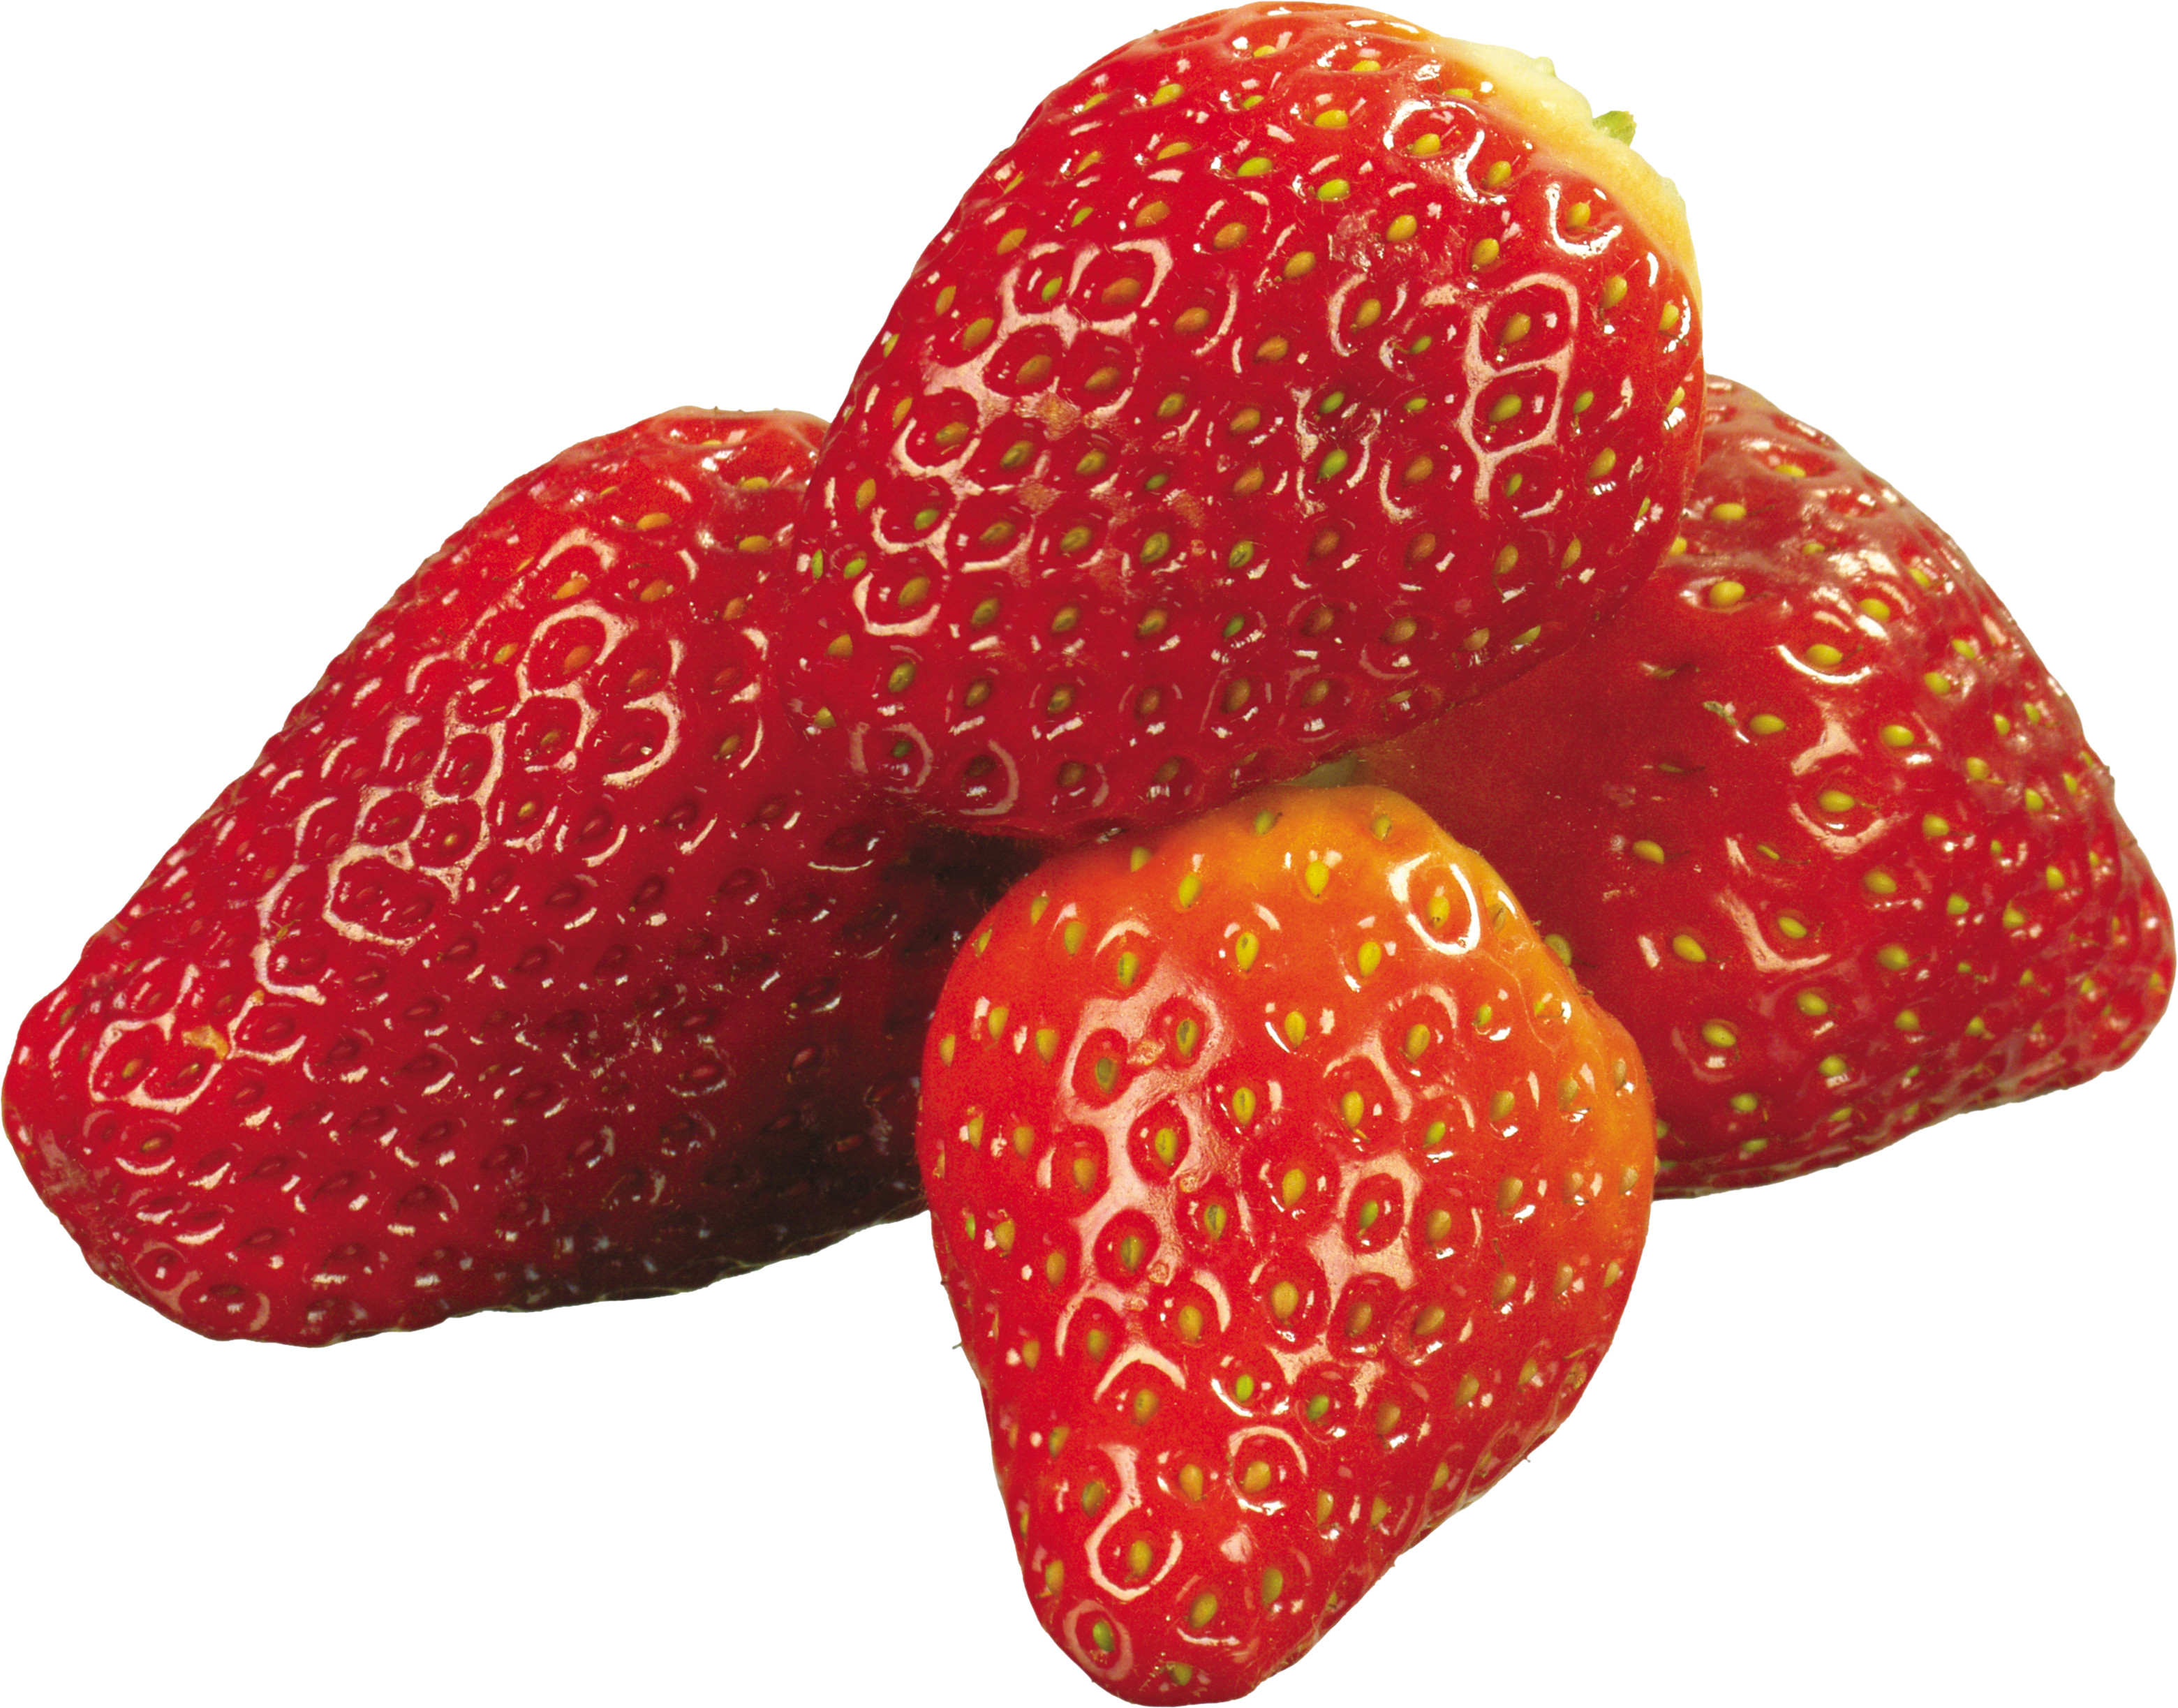 Clipart Strawberry Best Free Images image #22977